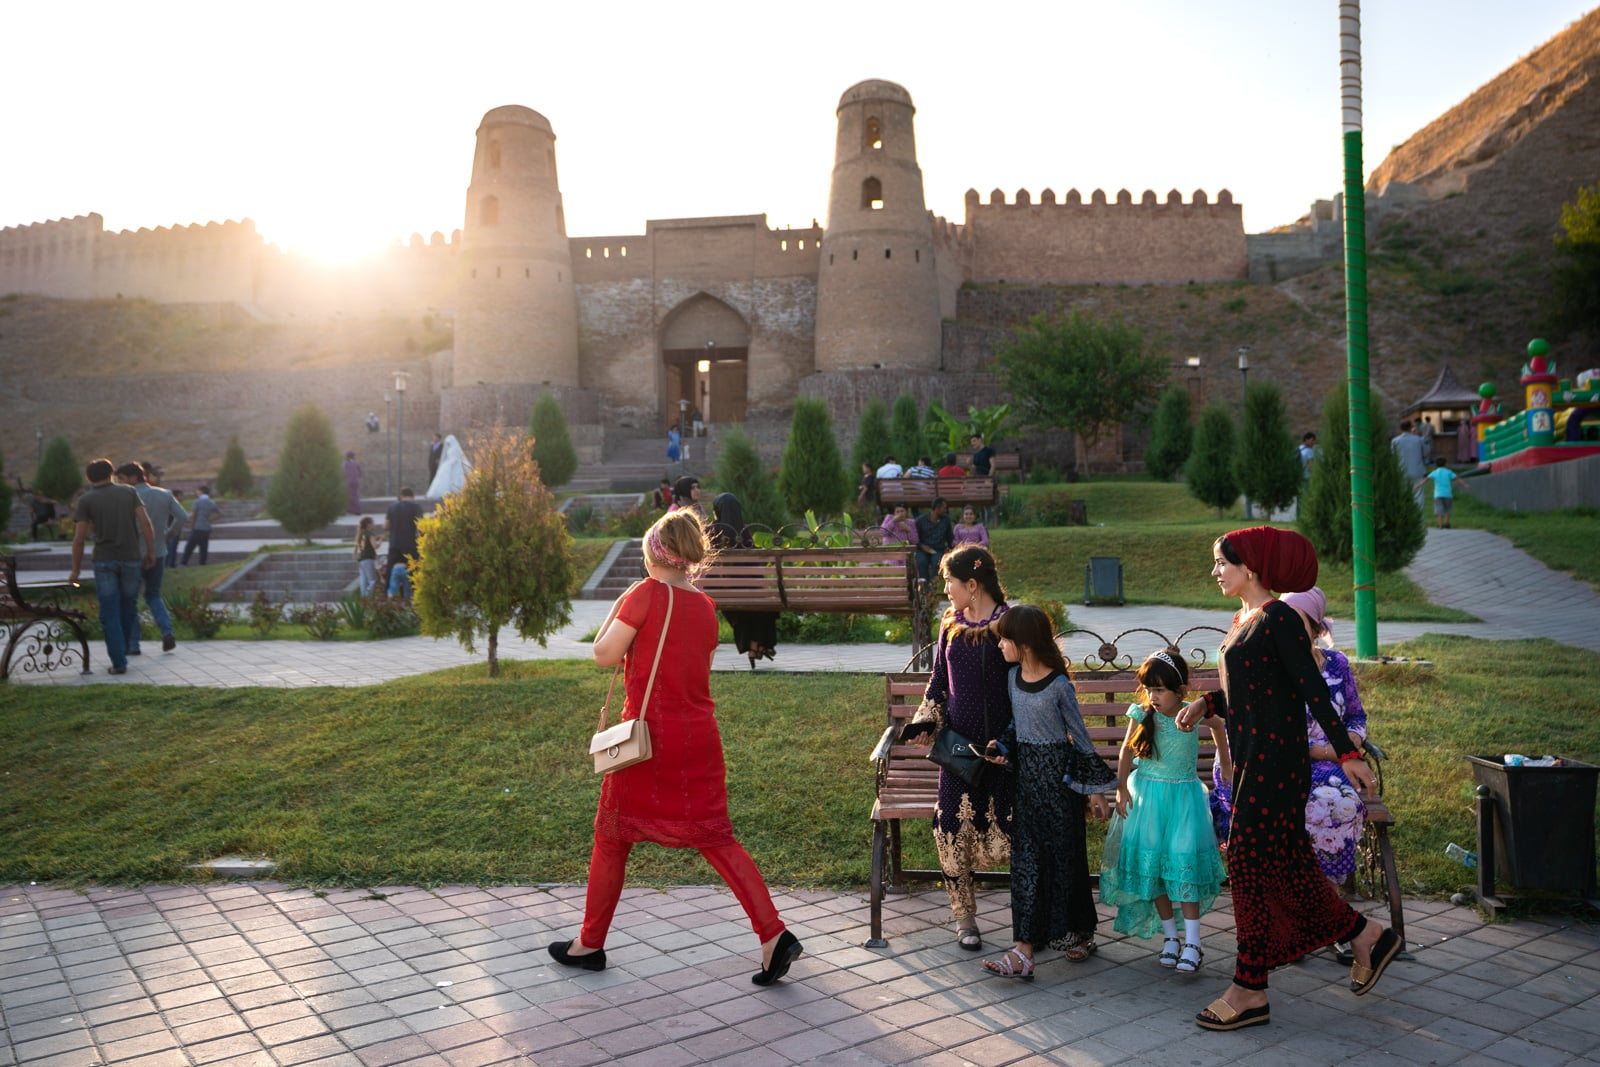 Tajik women outside Hisor Fort in Dushanbe, Tajikistan